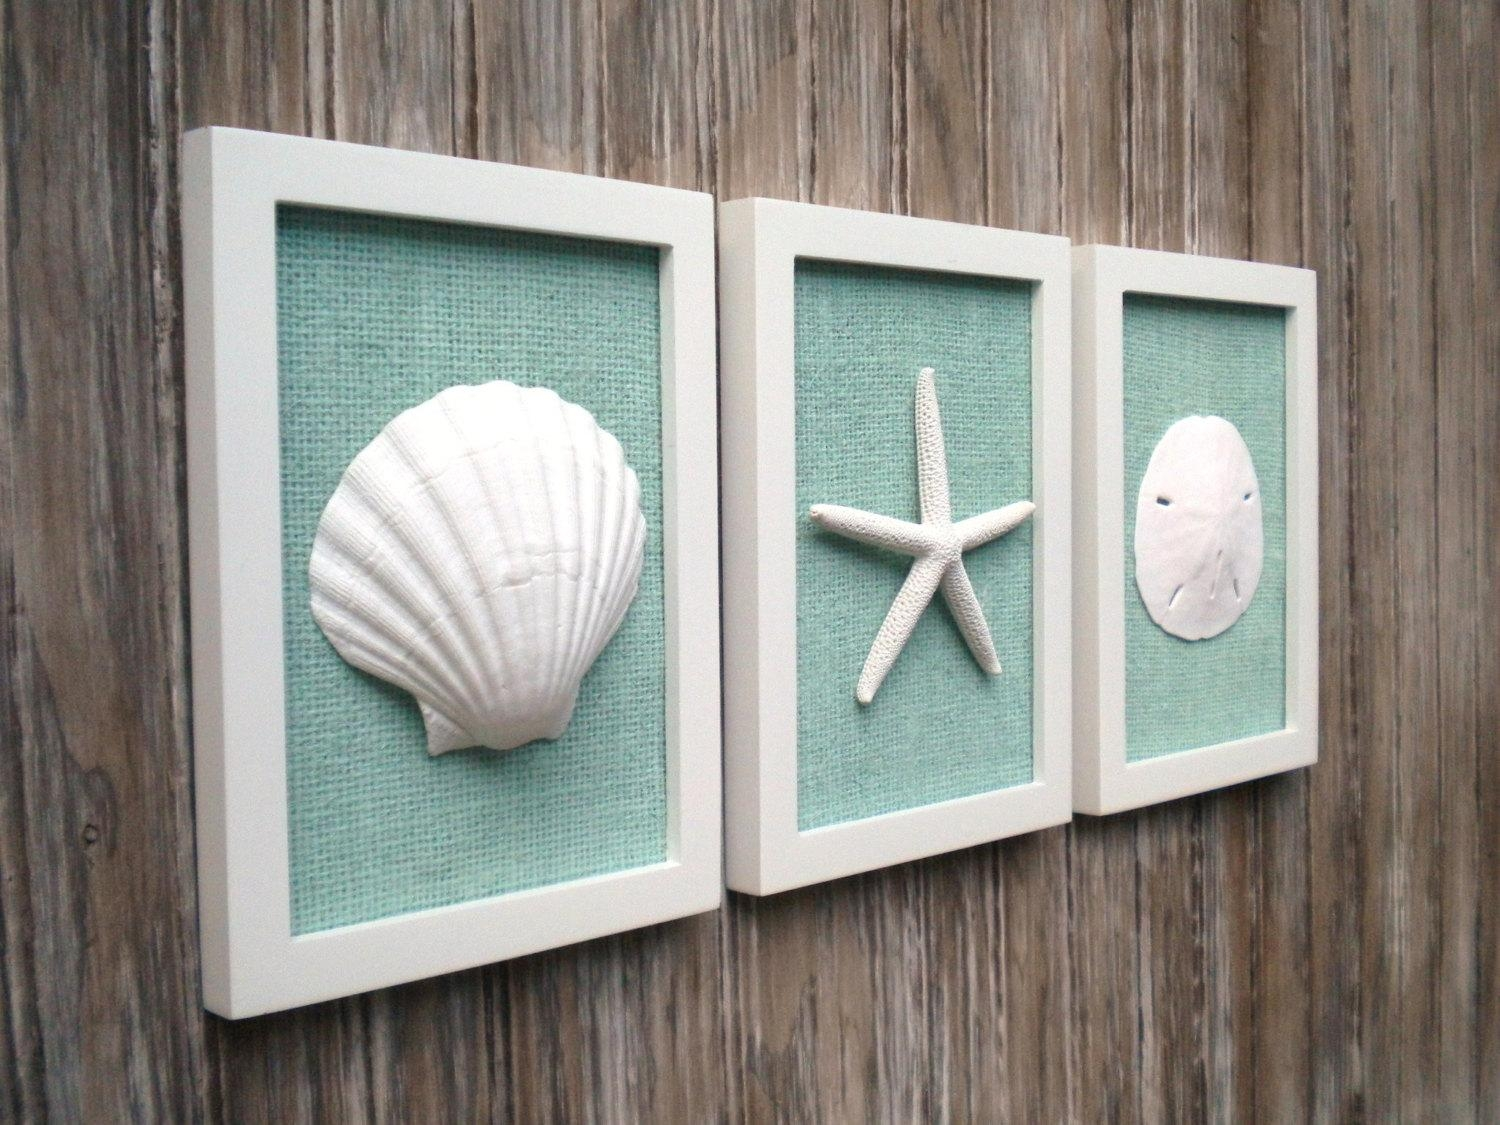 Cottage Chic Set Of Beach Wall Art Sea Shells Home Decor Inside Beach Wall Art (Image 11 of 20)